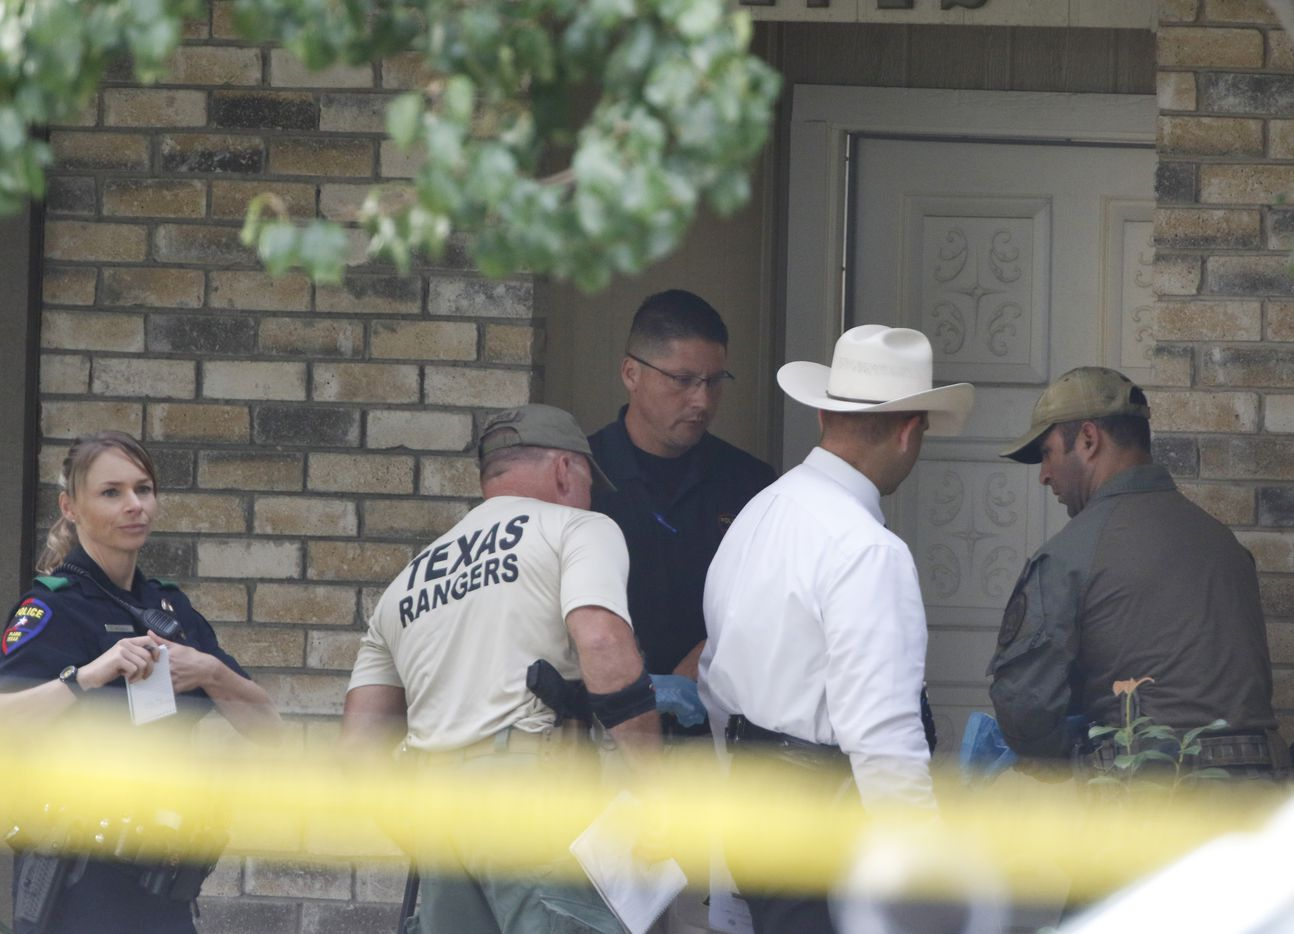 Plano police and the Texas Rangers at the scene of the shooting.